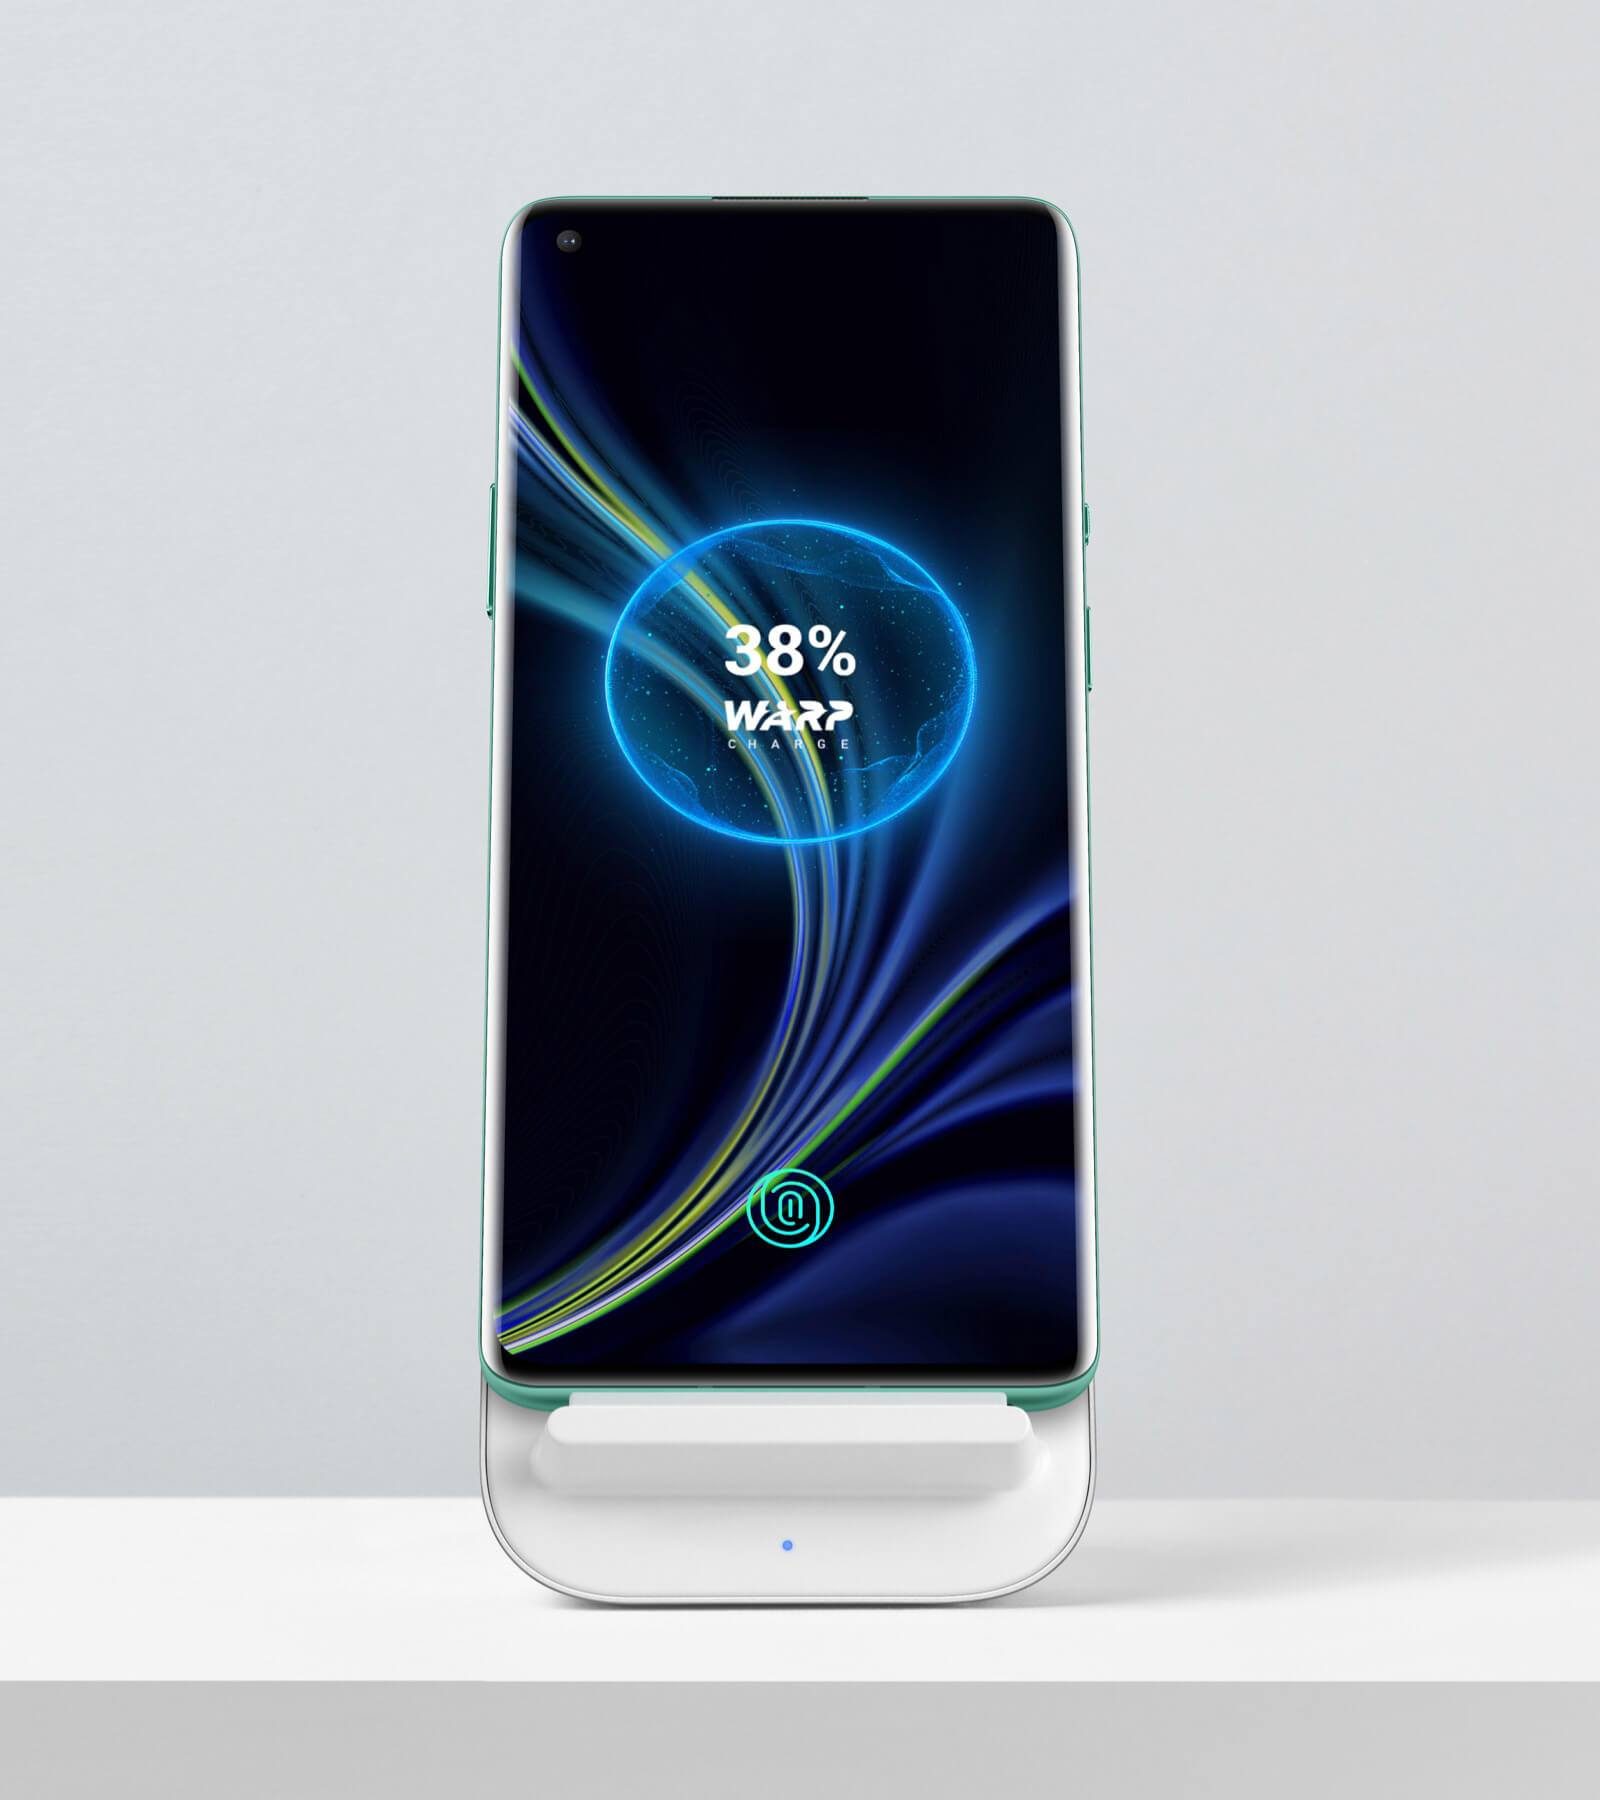 OnePlus 8 Pro using the fastest wireless charger ever